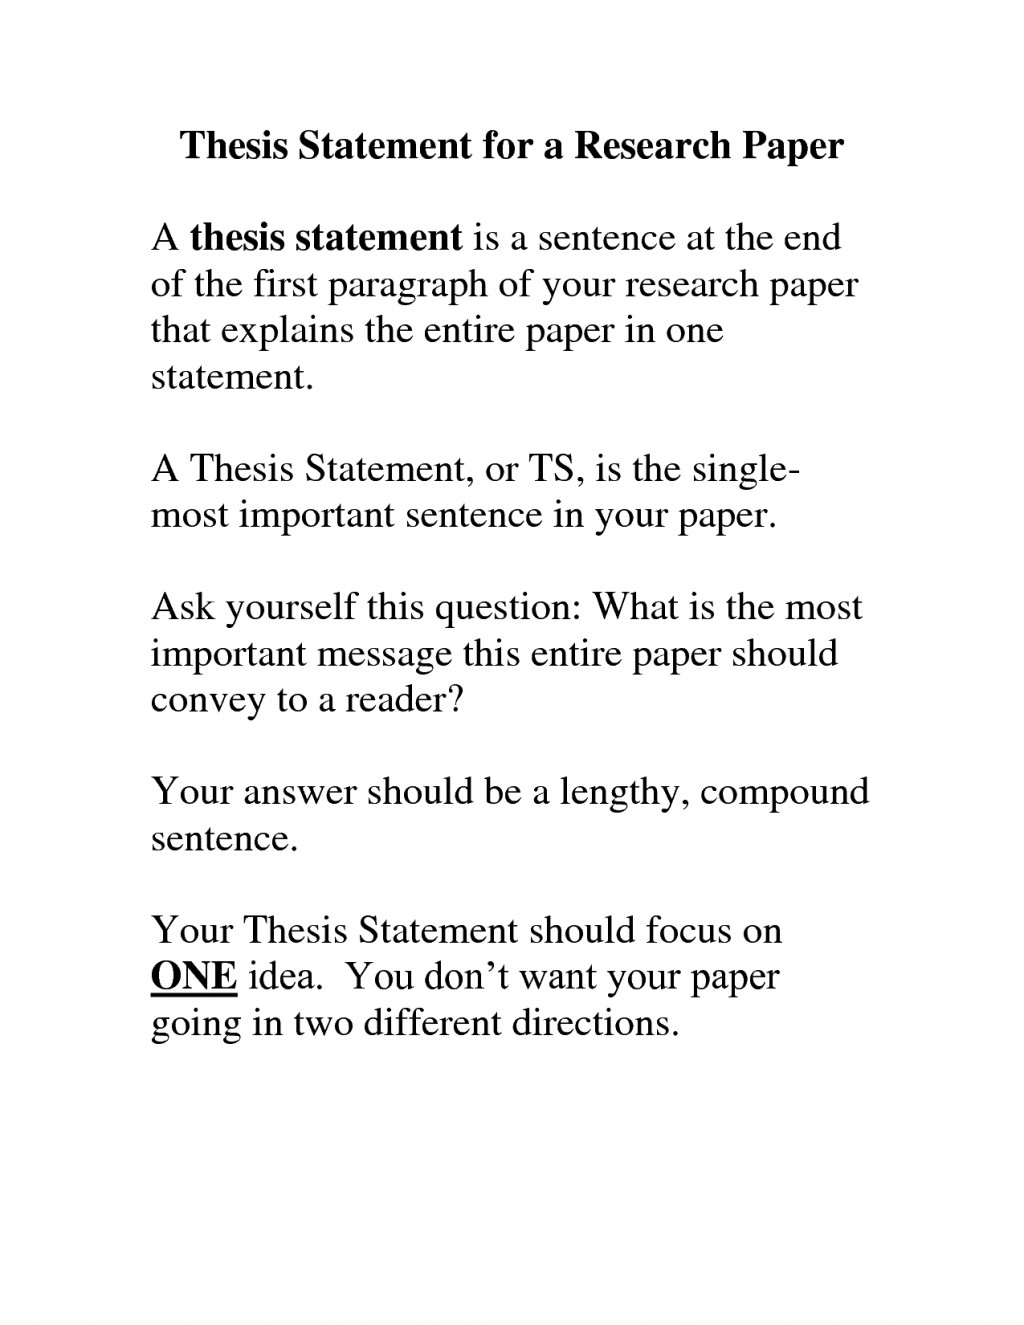 001 Research Paper Thesis Fearsome Statement Good For Career Introduction Air Pollution Large